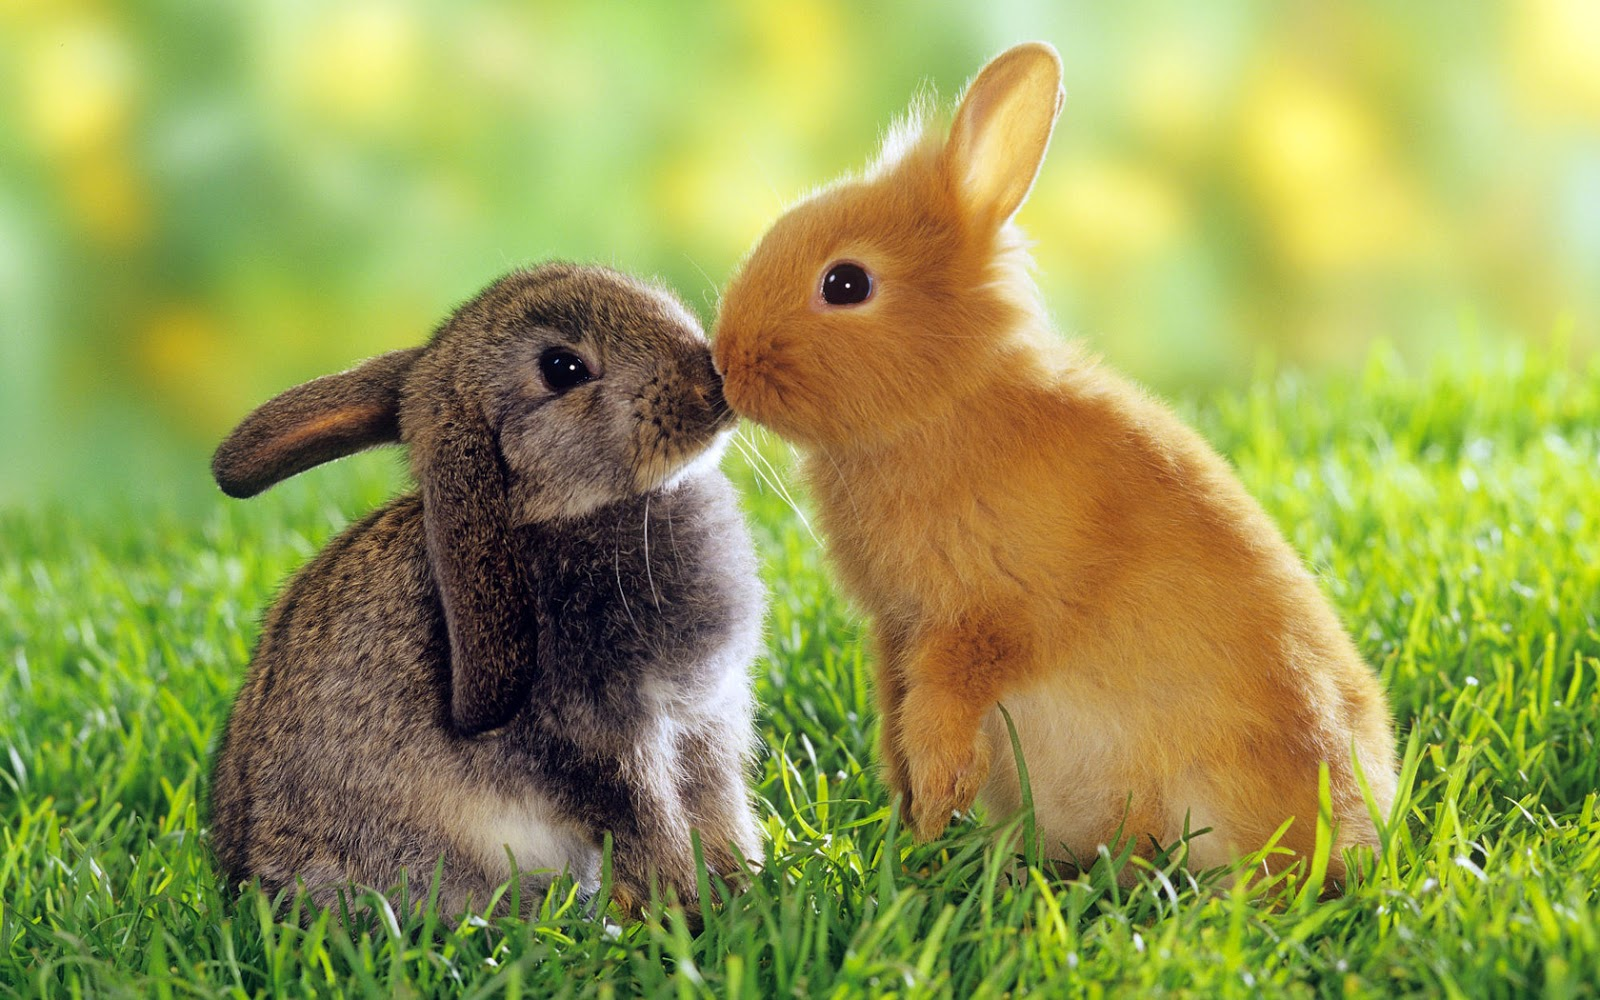 animal funny sweet animals cute latest loving bunny adorable lovers pets wallpapers romantic loved cutest lovely baby couples many different